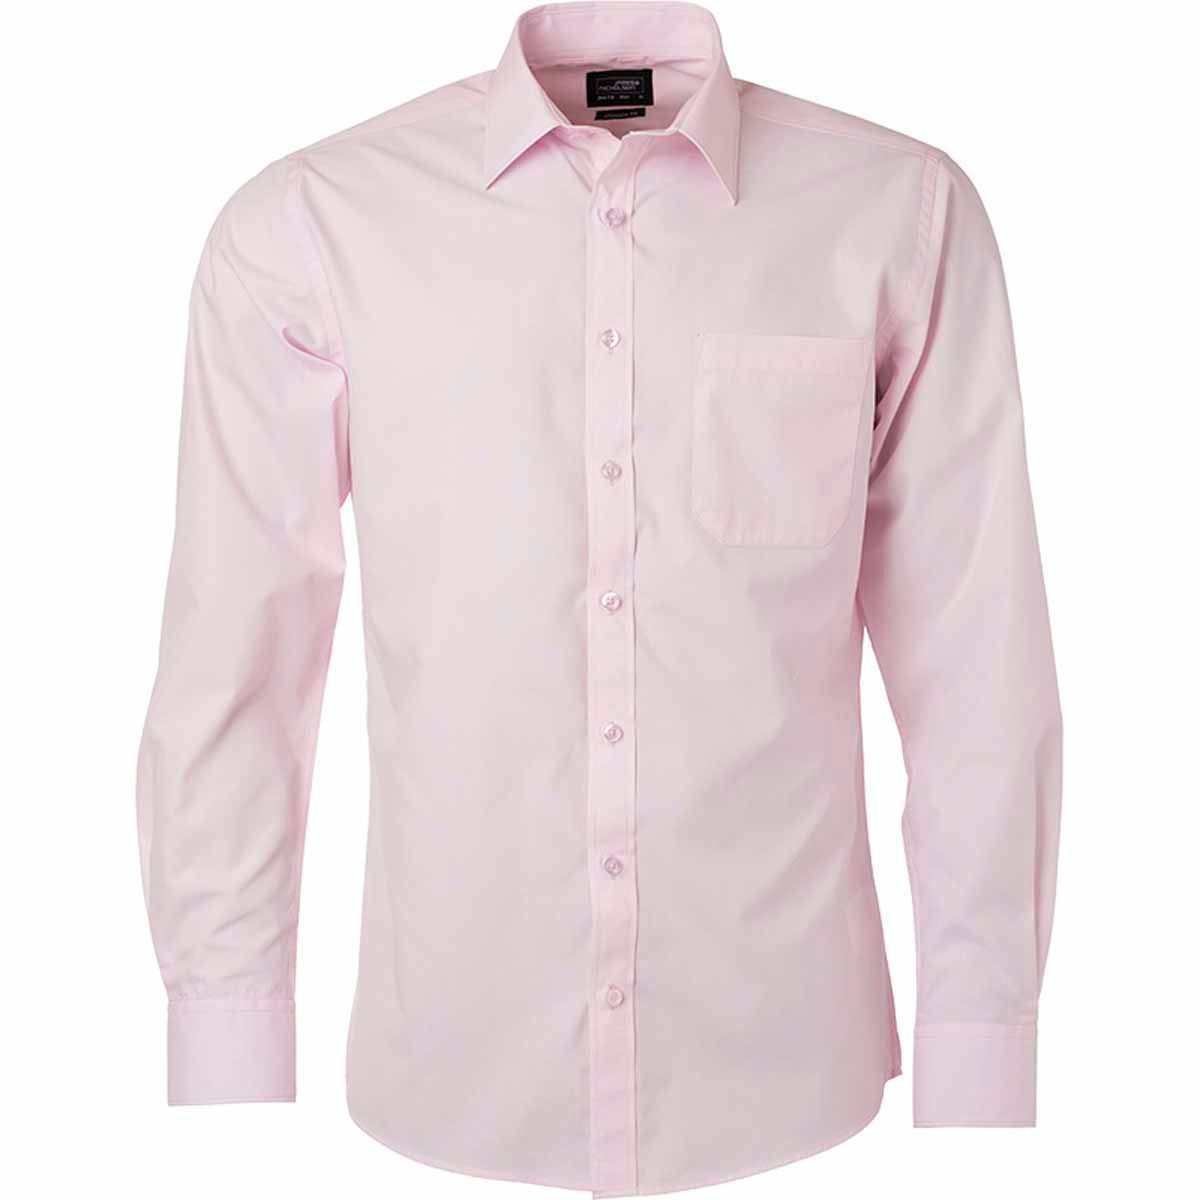 chemise popeline manches longues JN678 homme rose clair